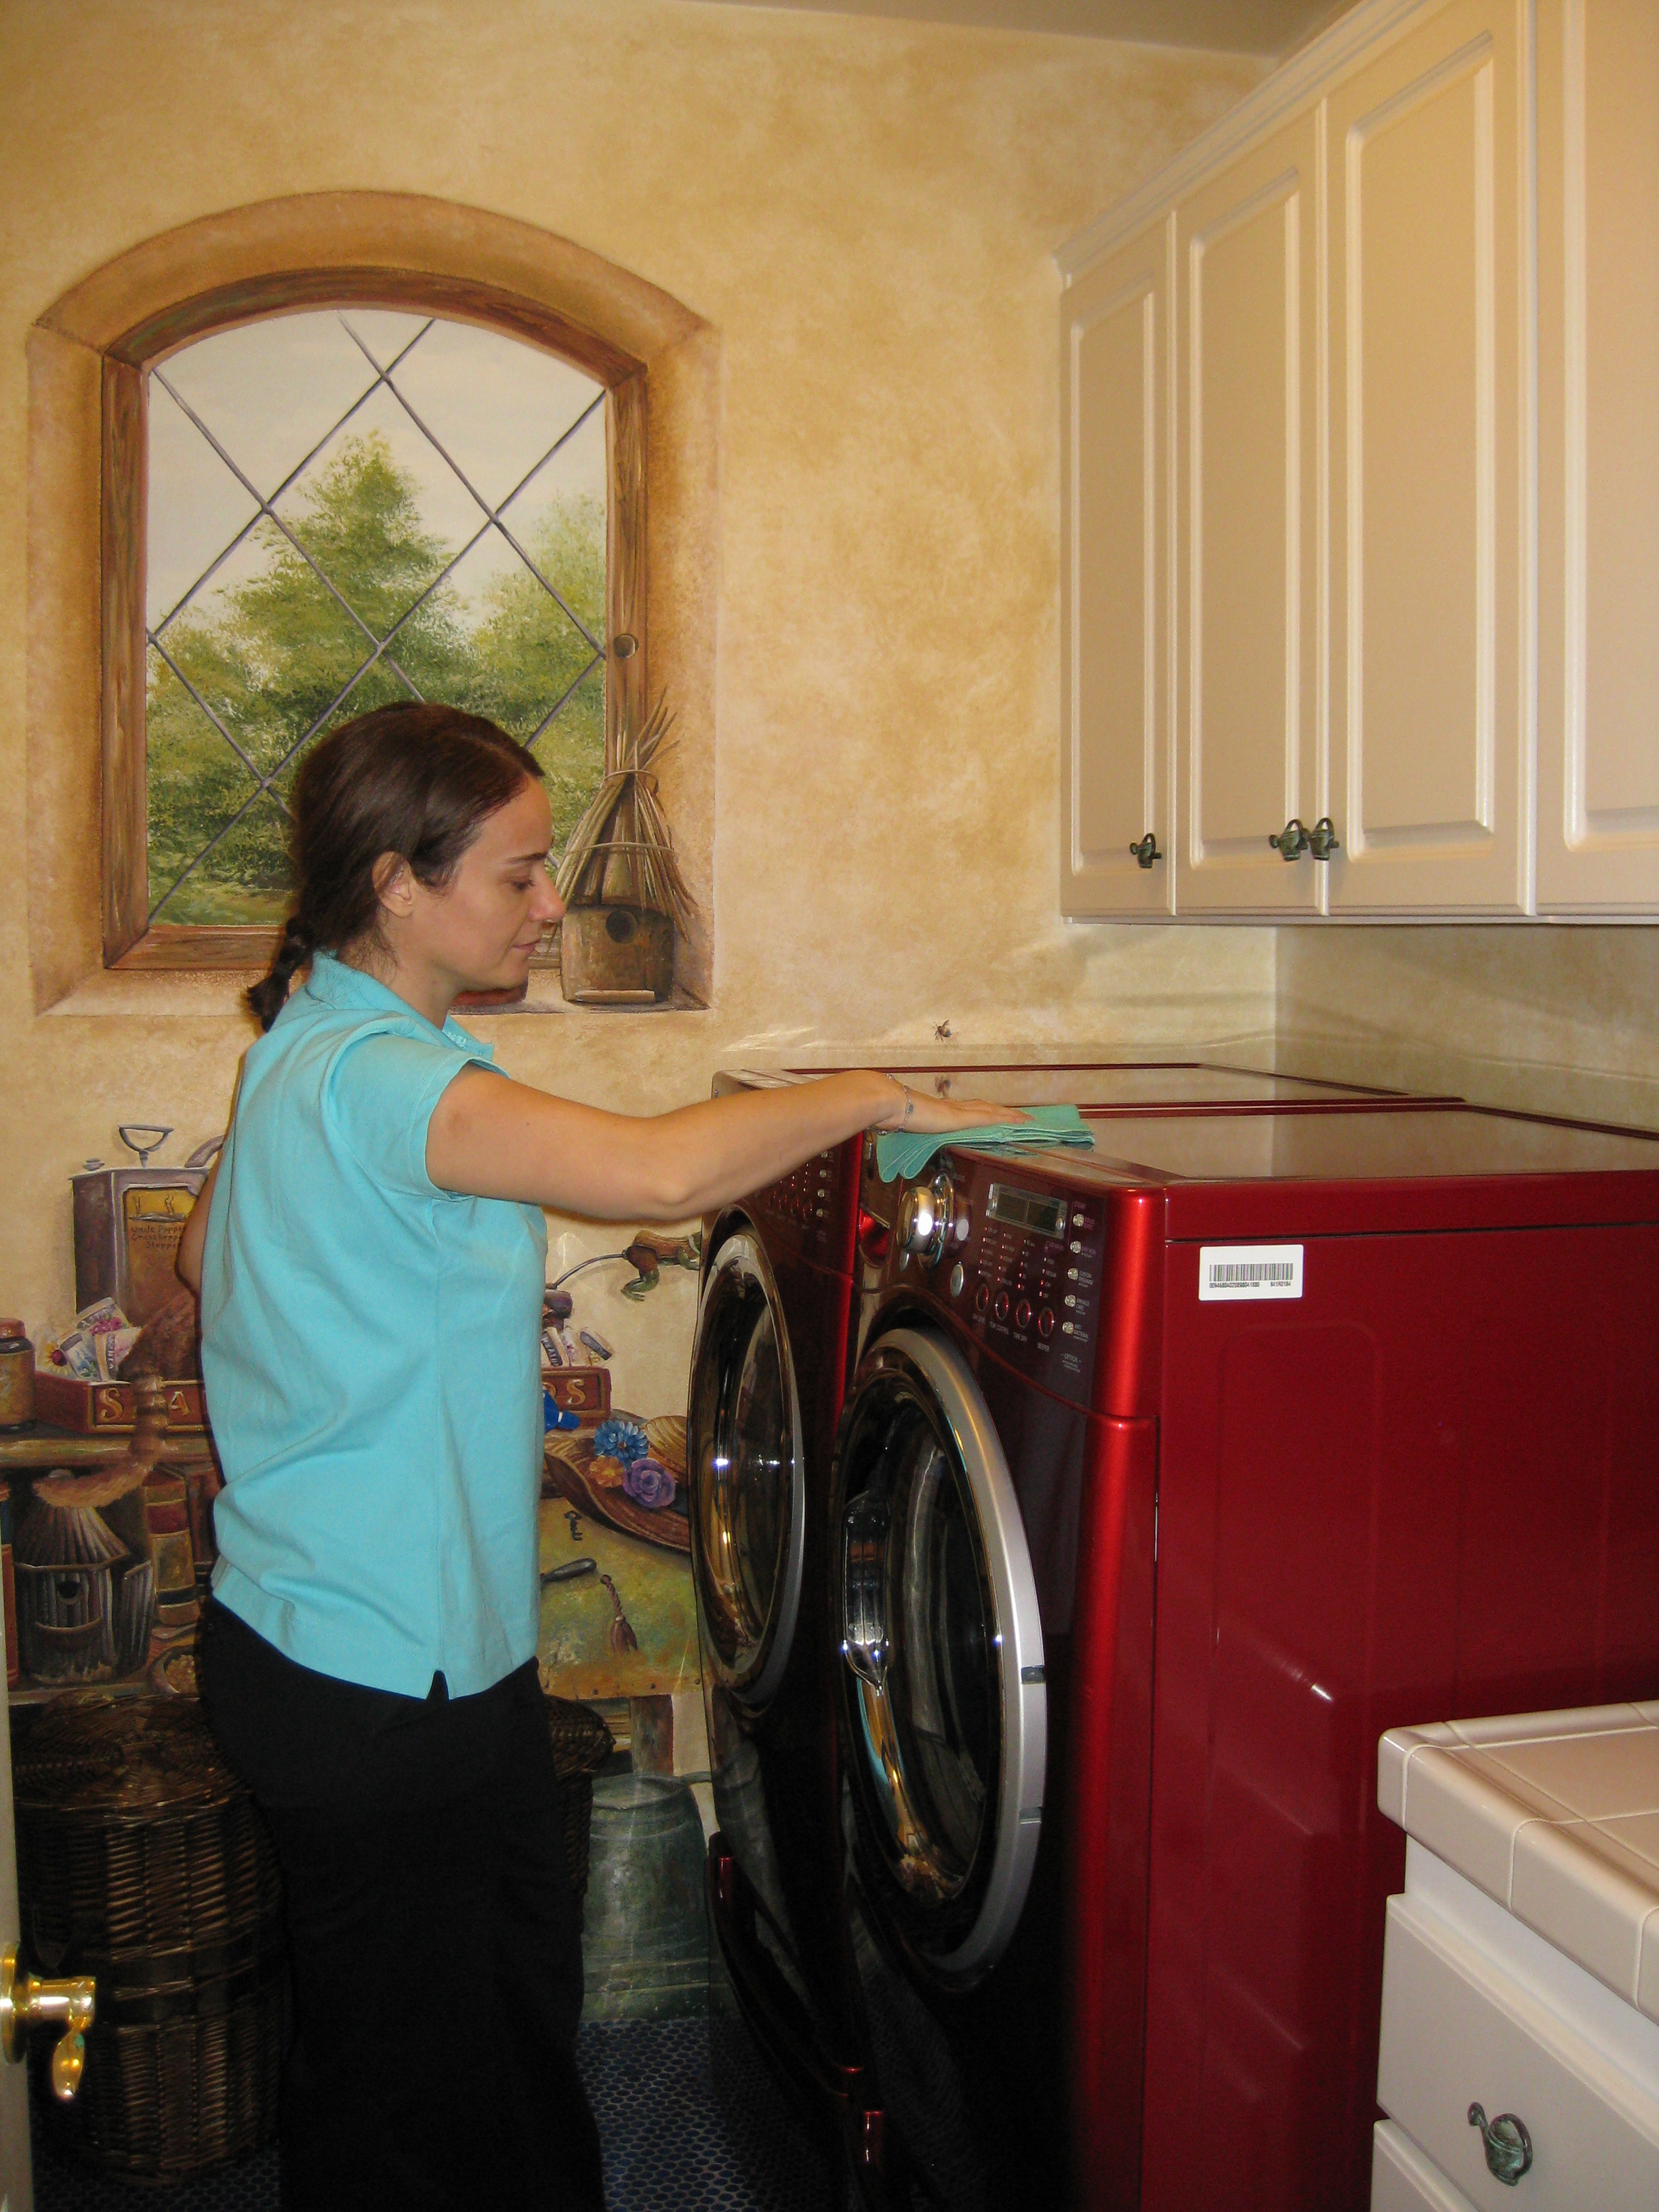 My Maids House Cleaning Service image 10